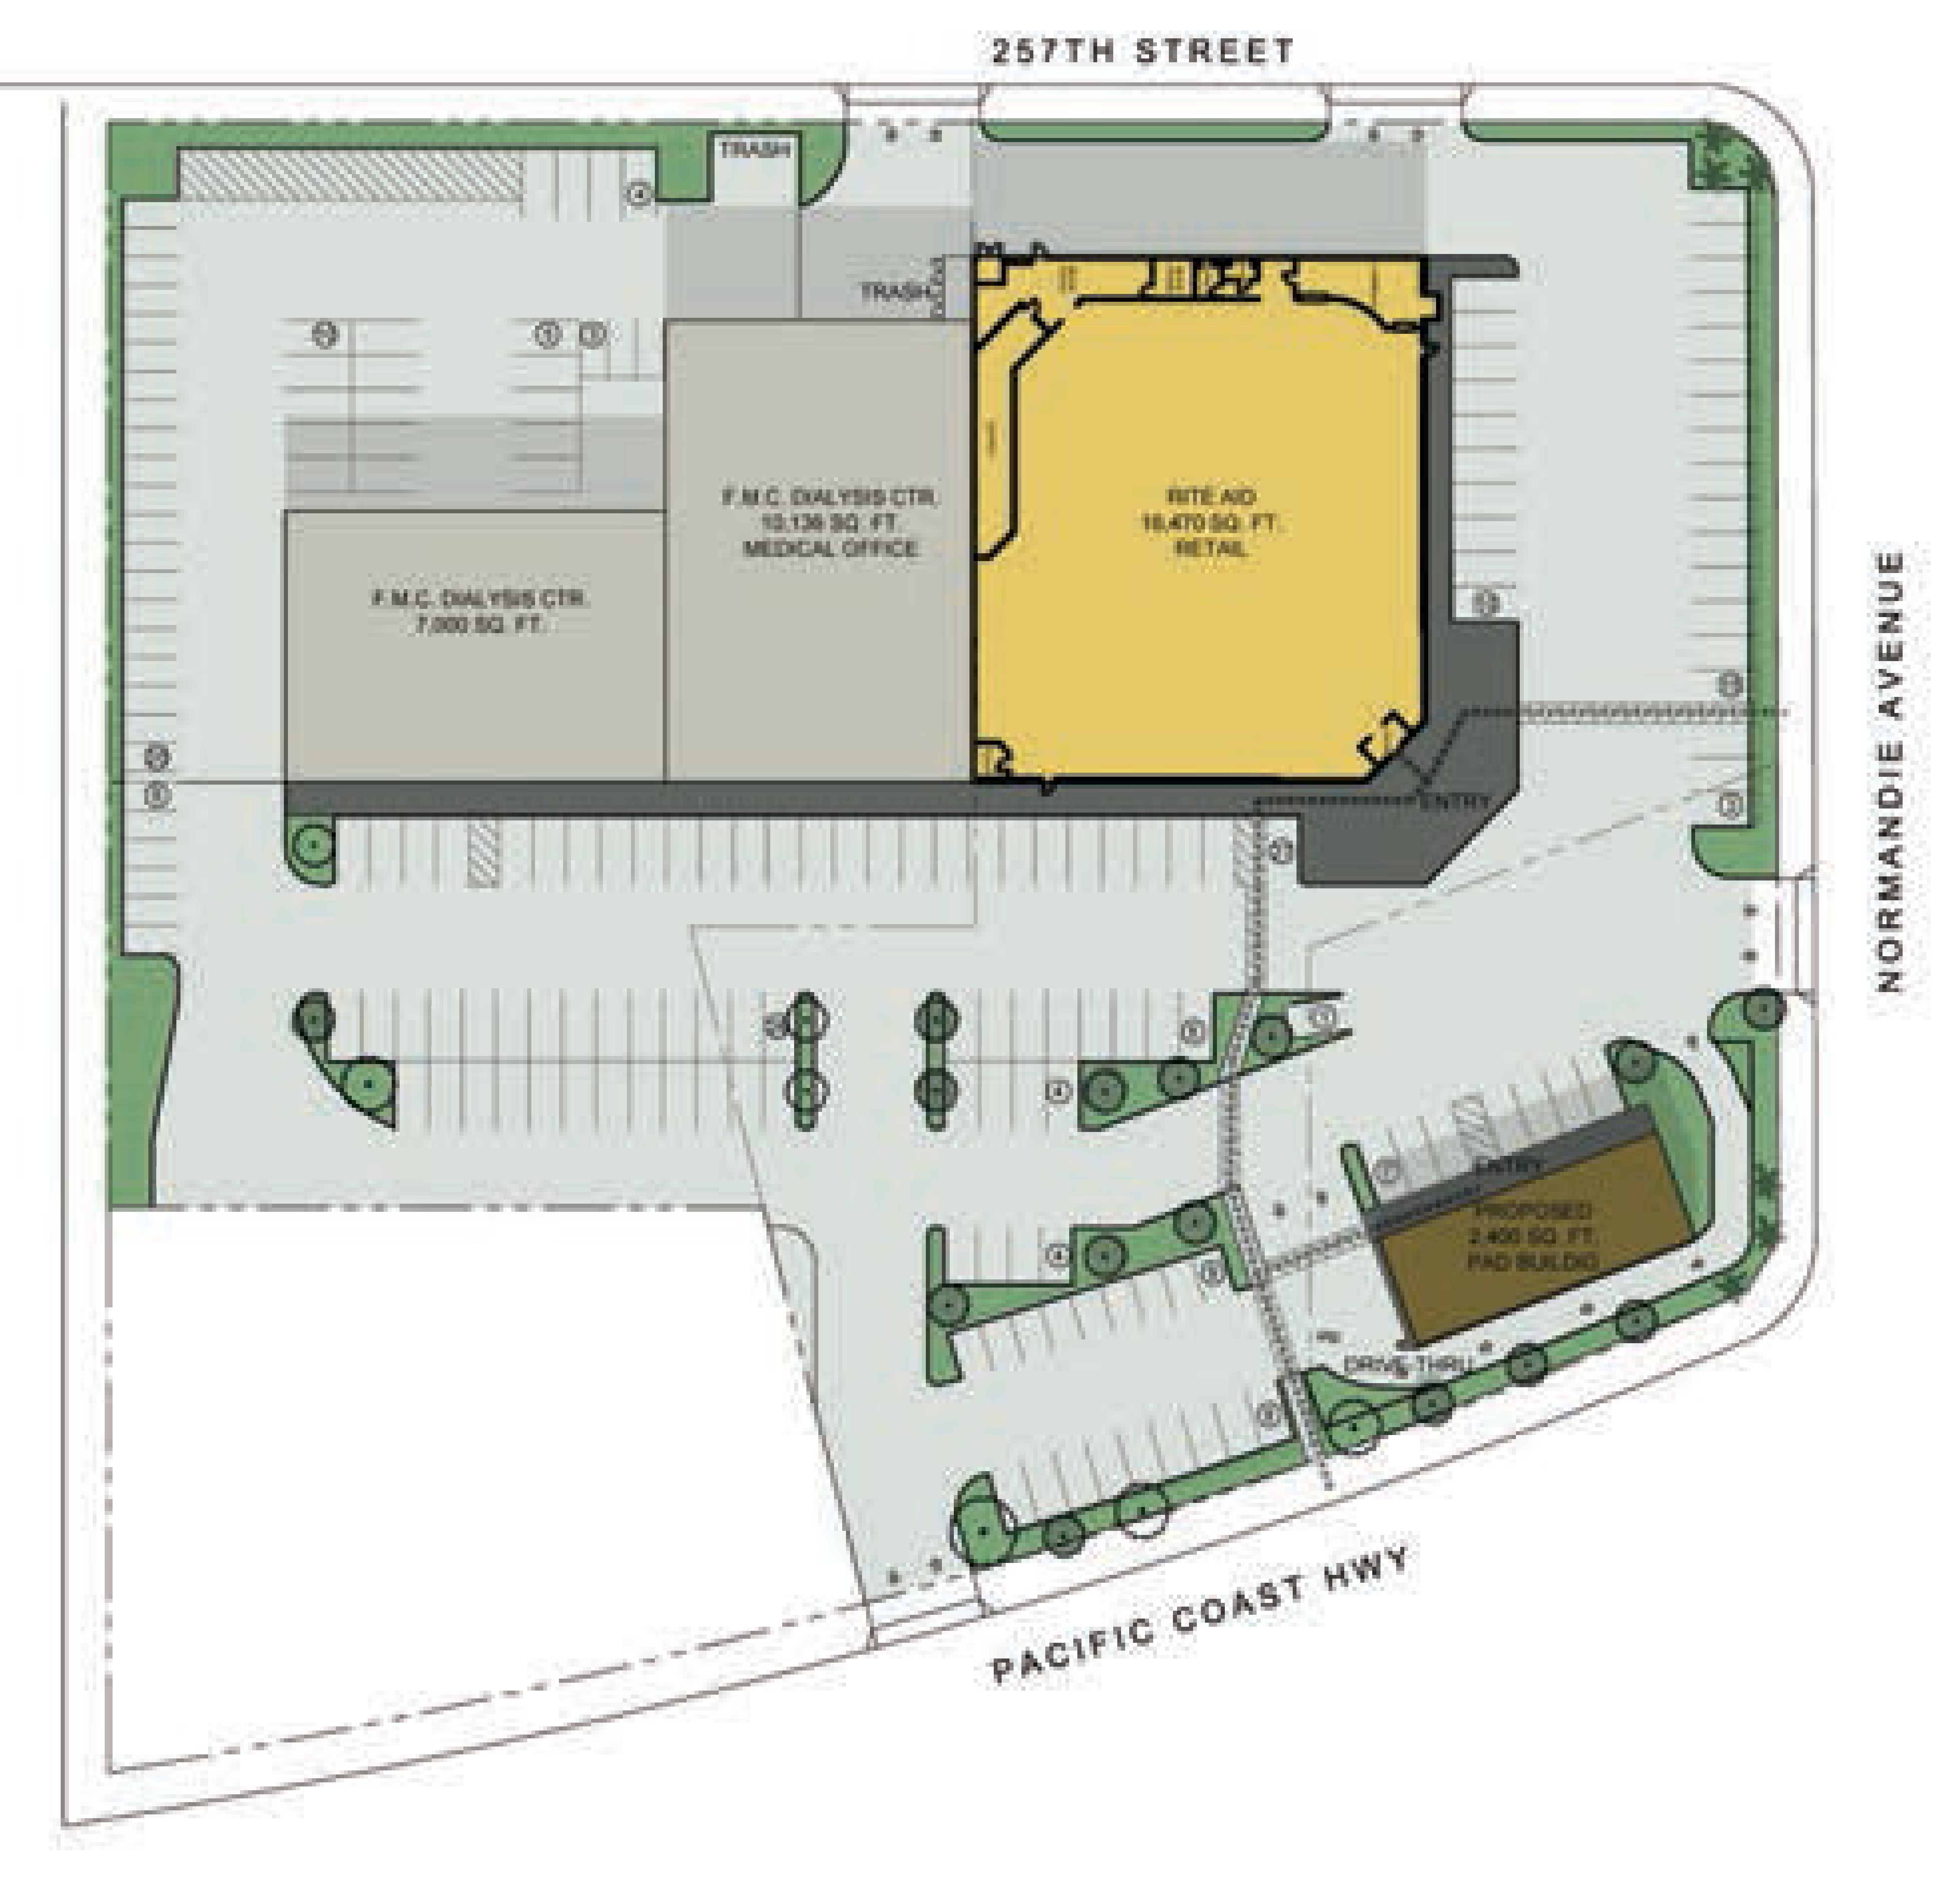 NWC PCH + Normandie: site plan